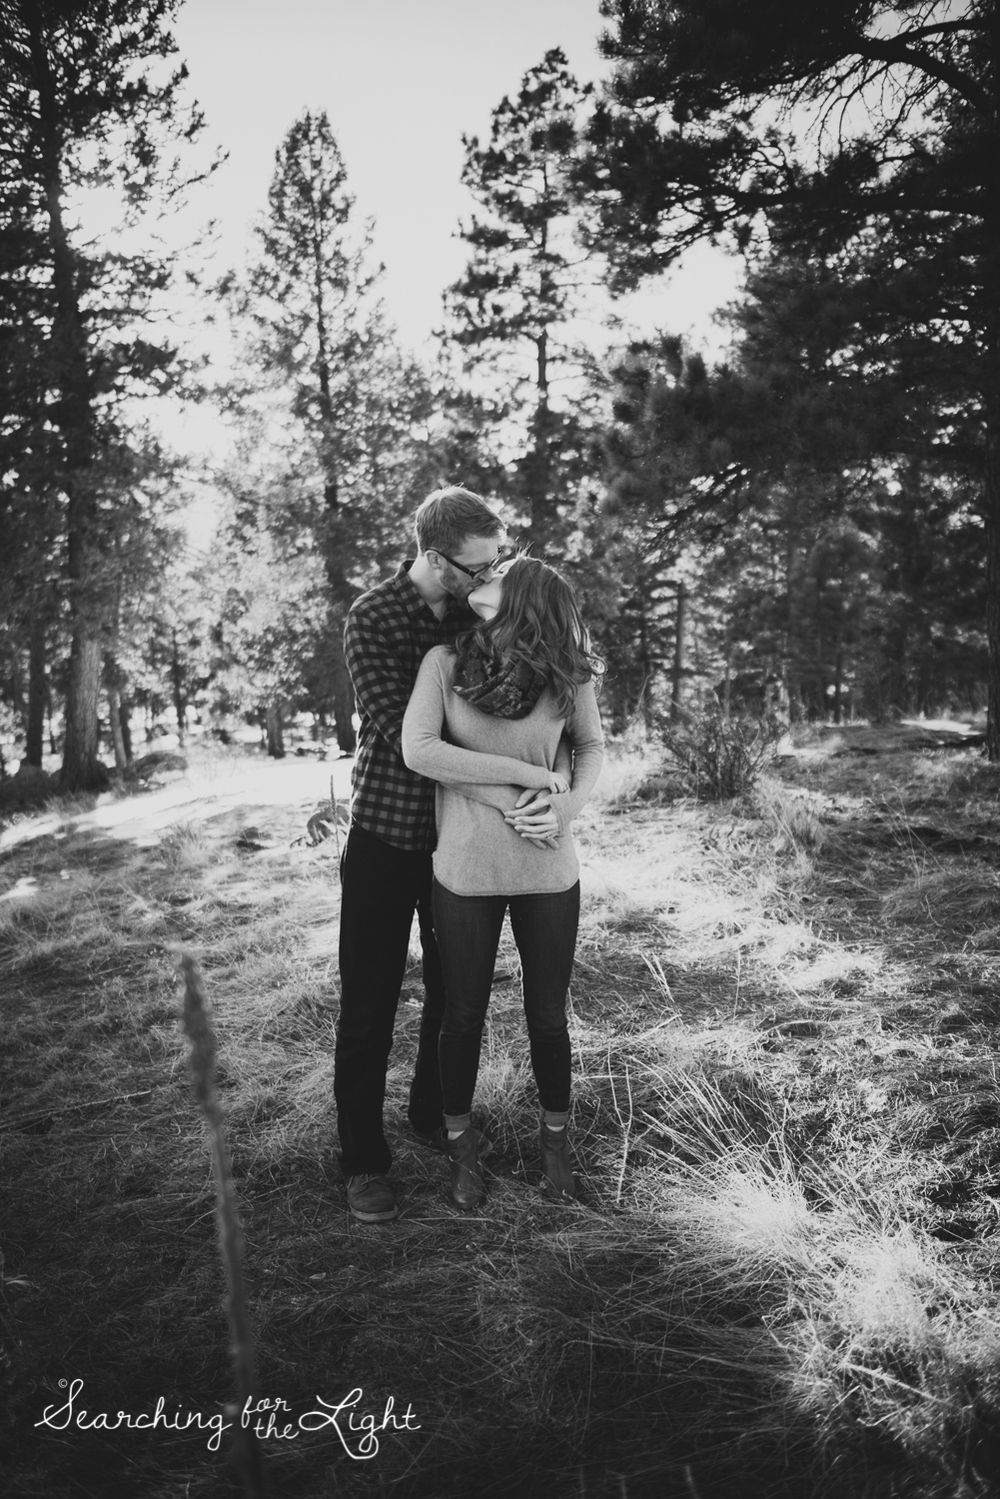 07-mountain-wedding-photographer-carolyn&eric_engagement086_bw.jpg